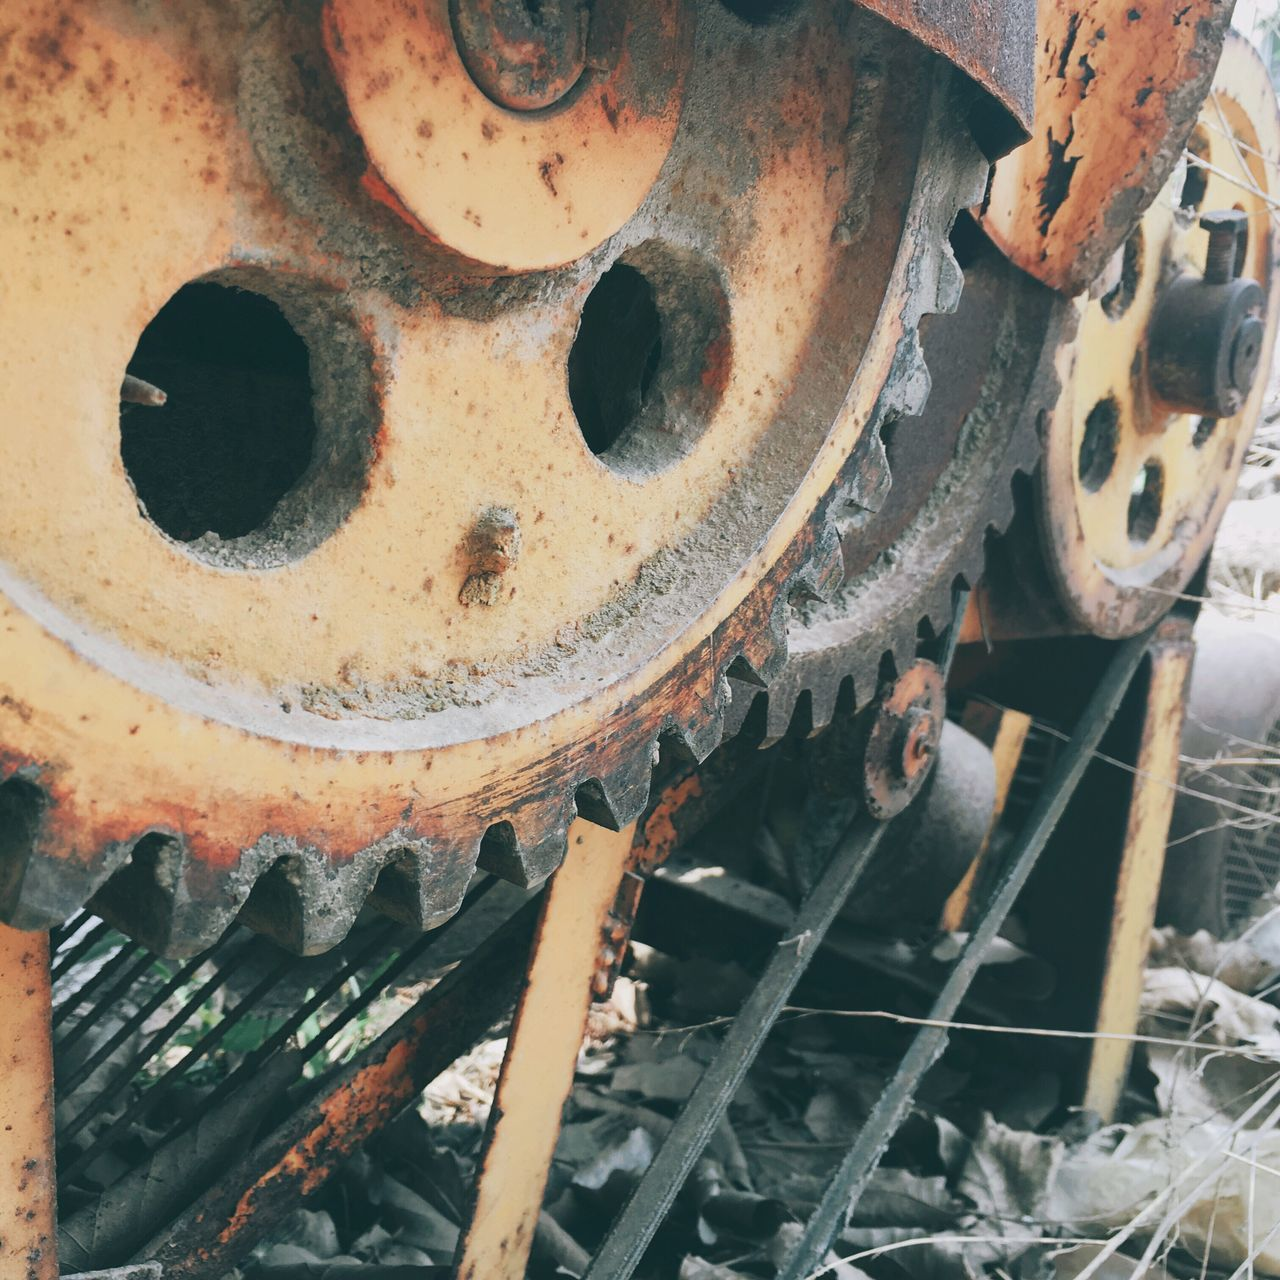 Metal Machine Part Gear Rusty Machinery Industry No People Factory Close-up Technology Indoors  Manufacturing Equipment Industrial Equipment Vehicle Part Workshop Day Metal Industry